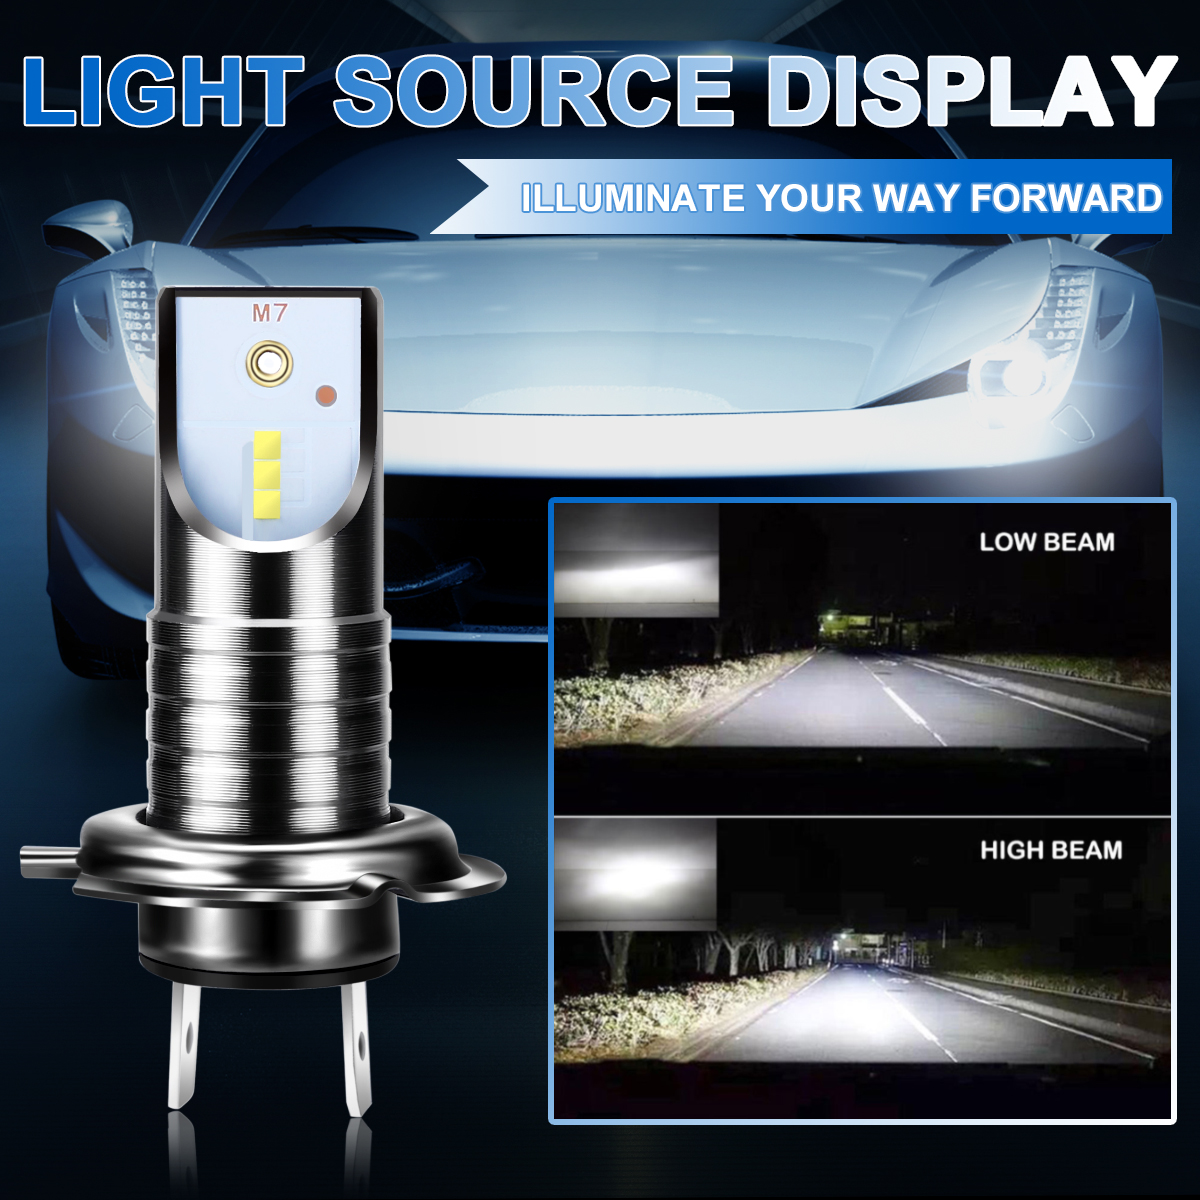 2pcs H7 LED Car Headlight Bulb 110W 13000LM 6000K 32V Canbus Error Free Bulb White Headlamp For BMW For Audi For Hyundai